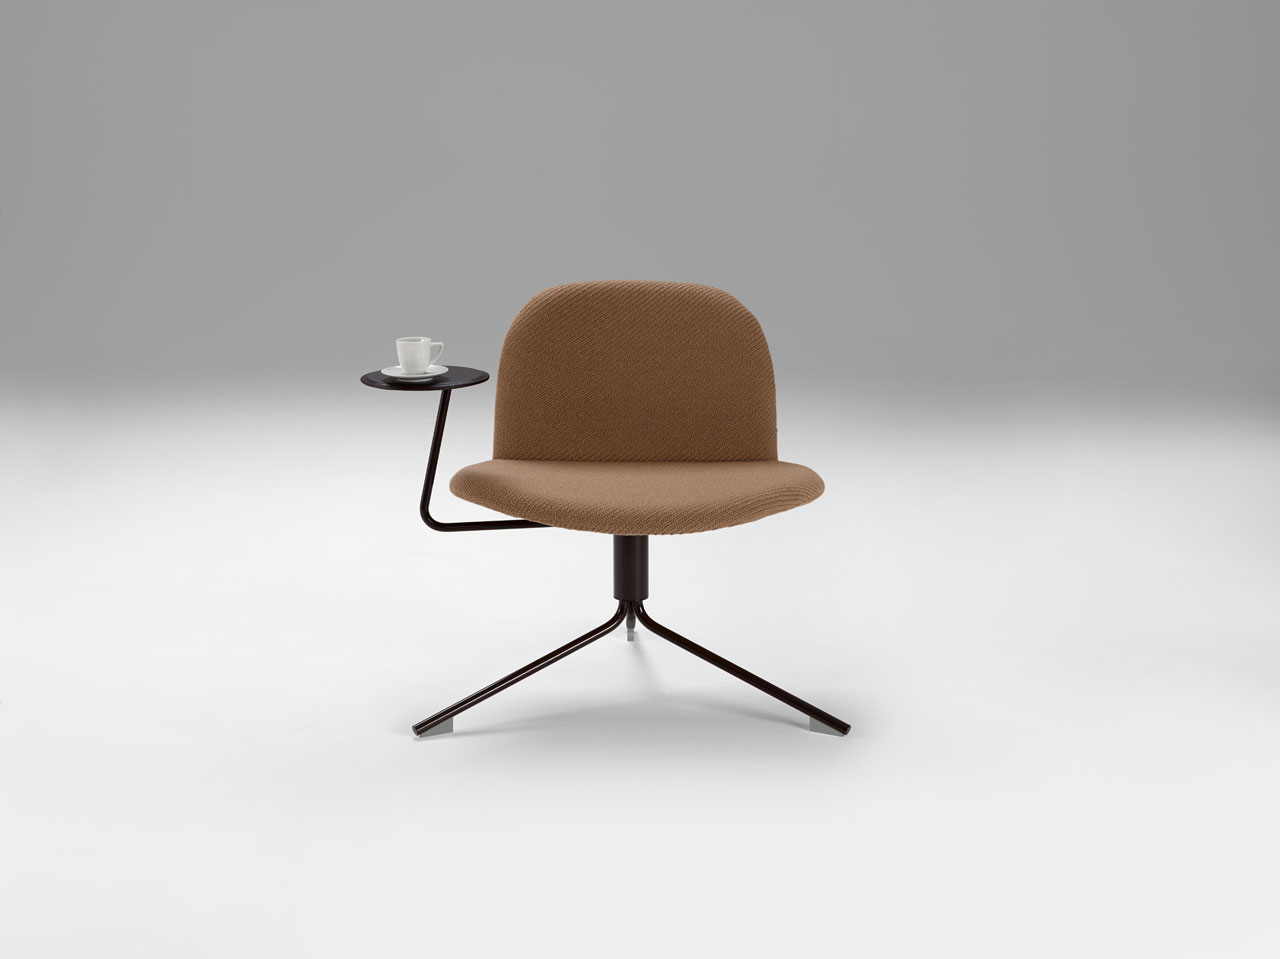 Satellite Chair by Richard Hutten for Offecct at Stockholm Design Week 2015 | Yellowtrace